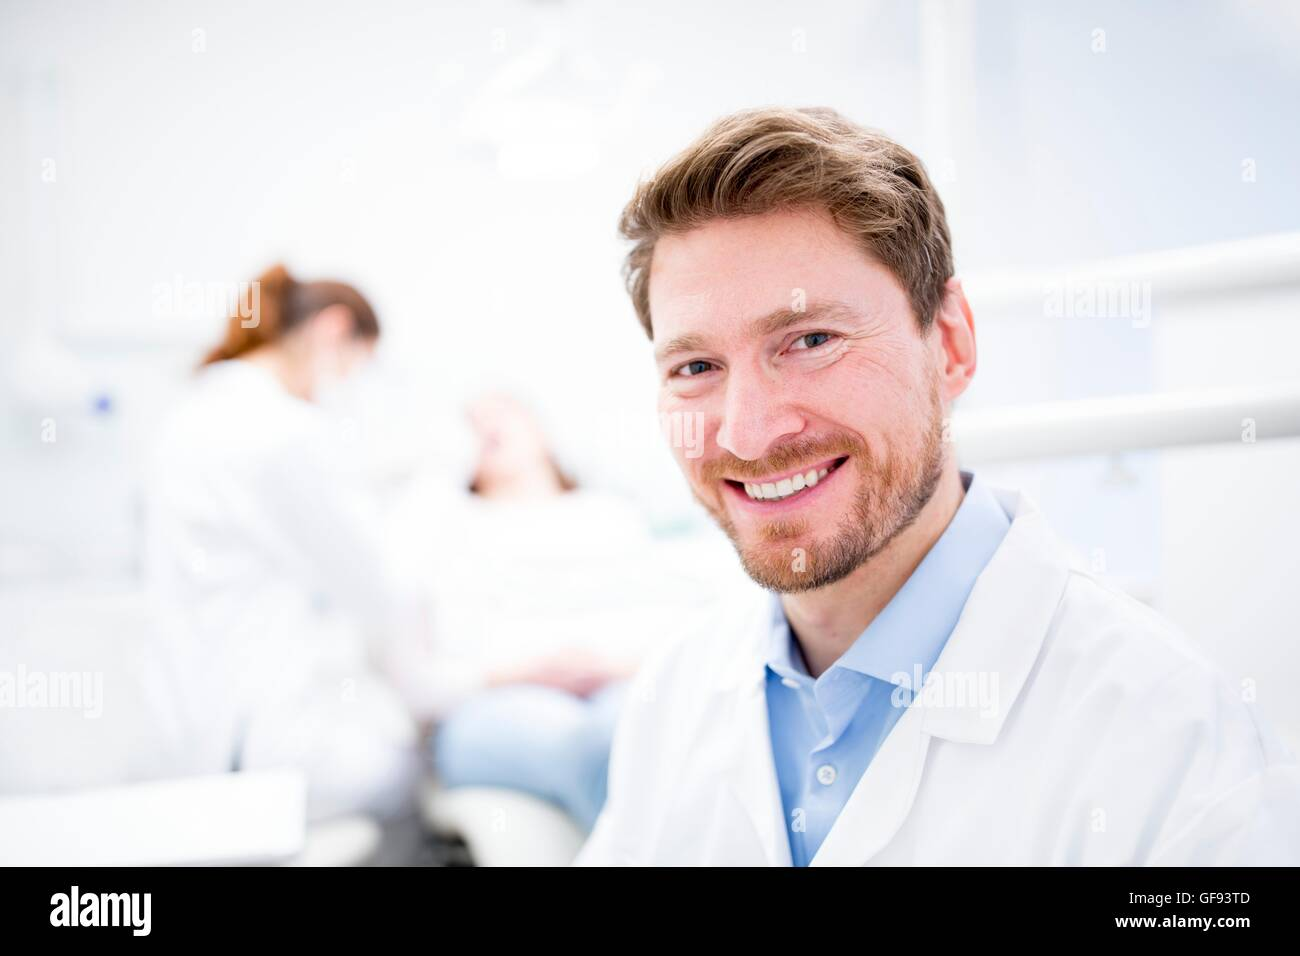 MODEL RELEASED. Close-up of dentist, portrait, close-up. - Stock Image